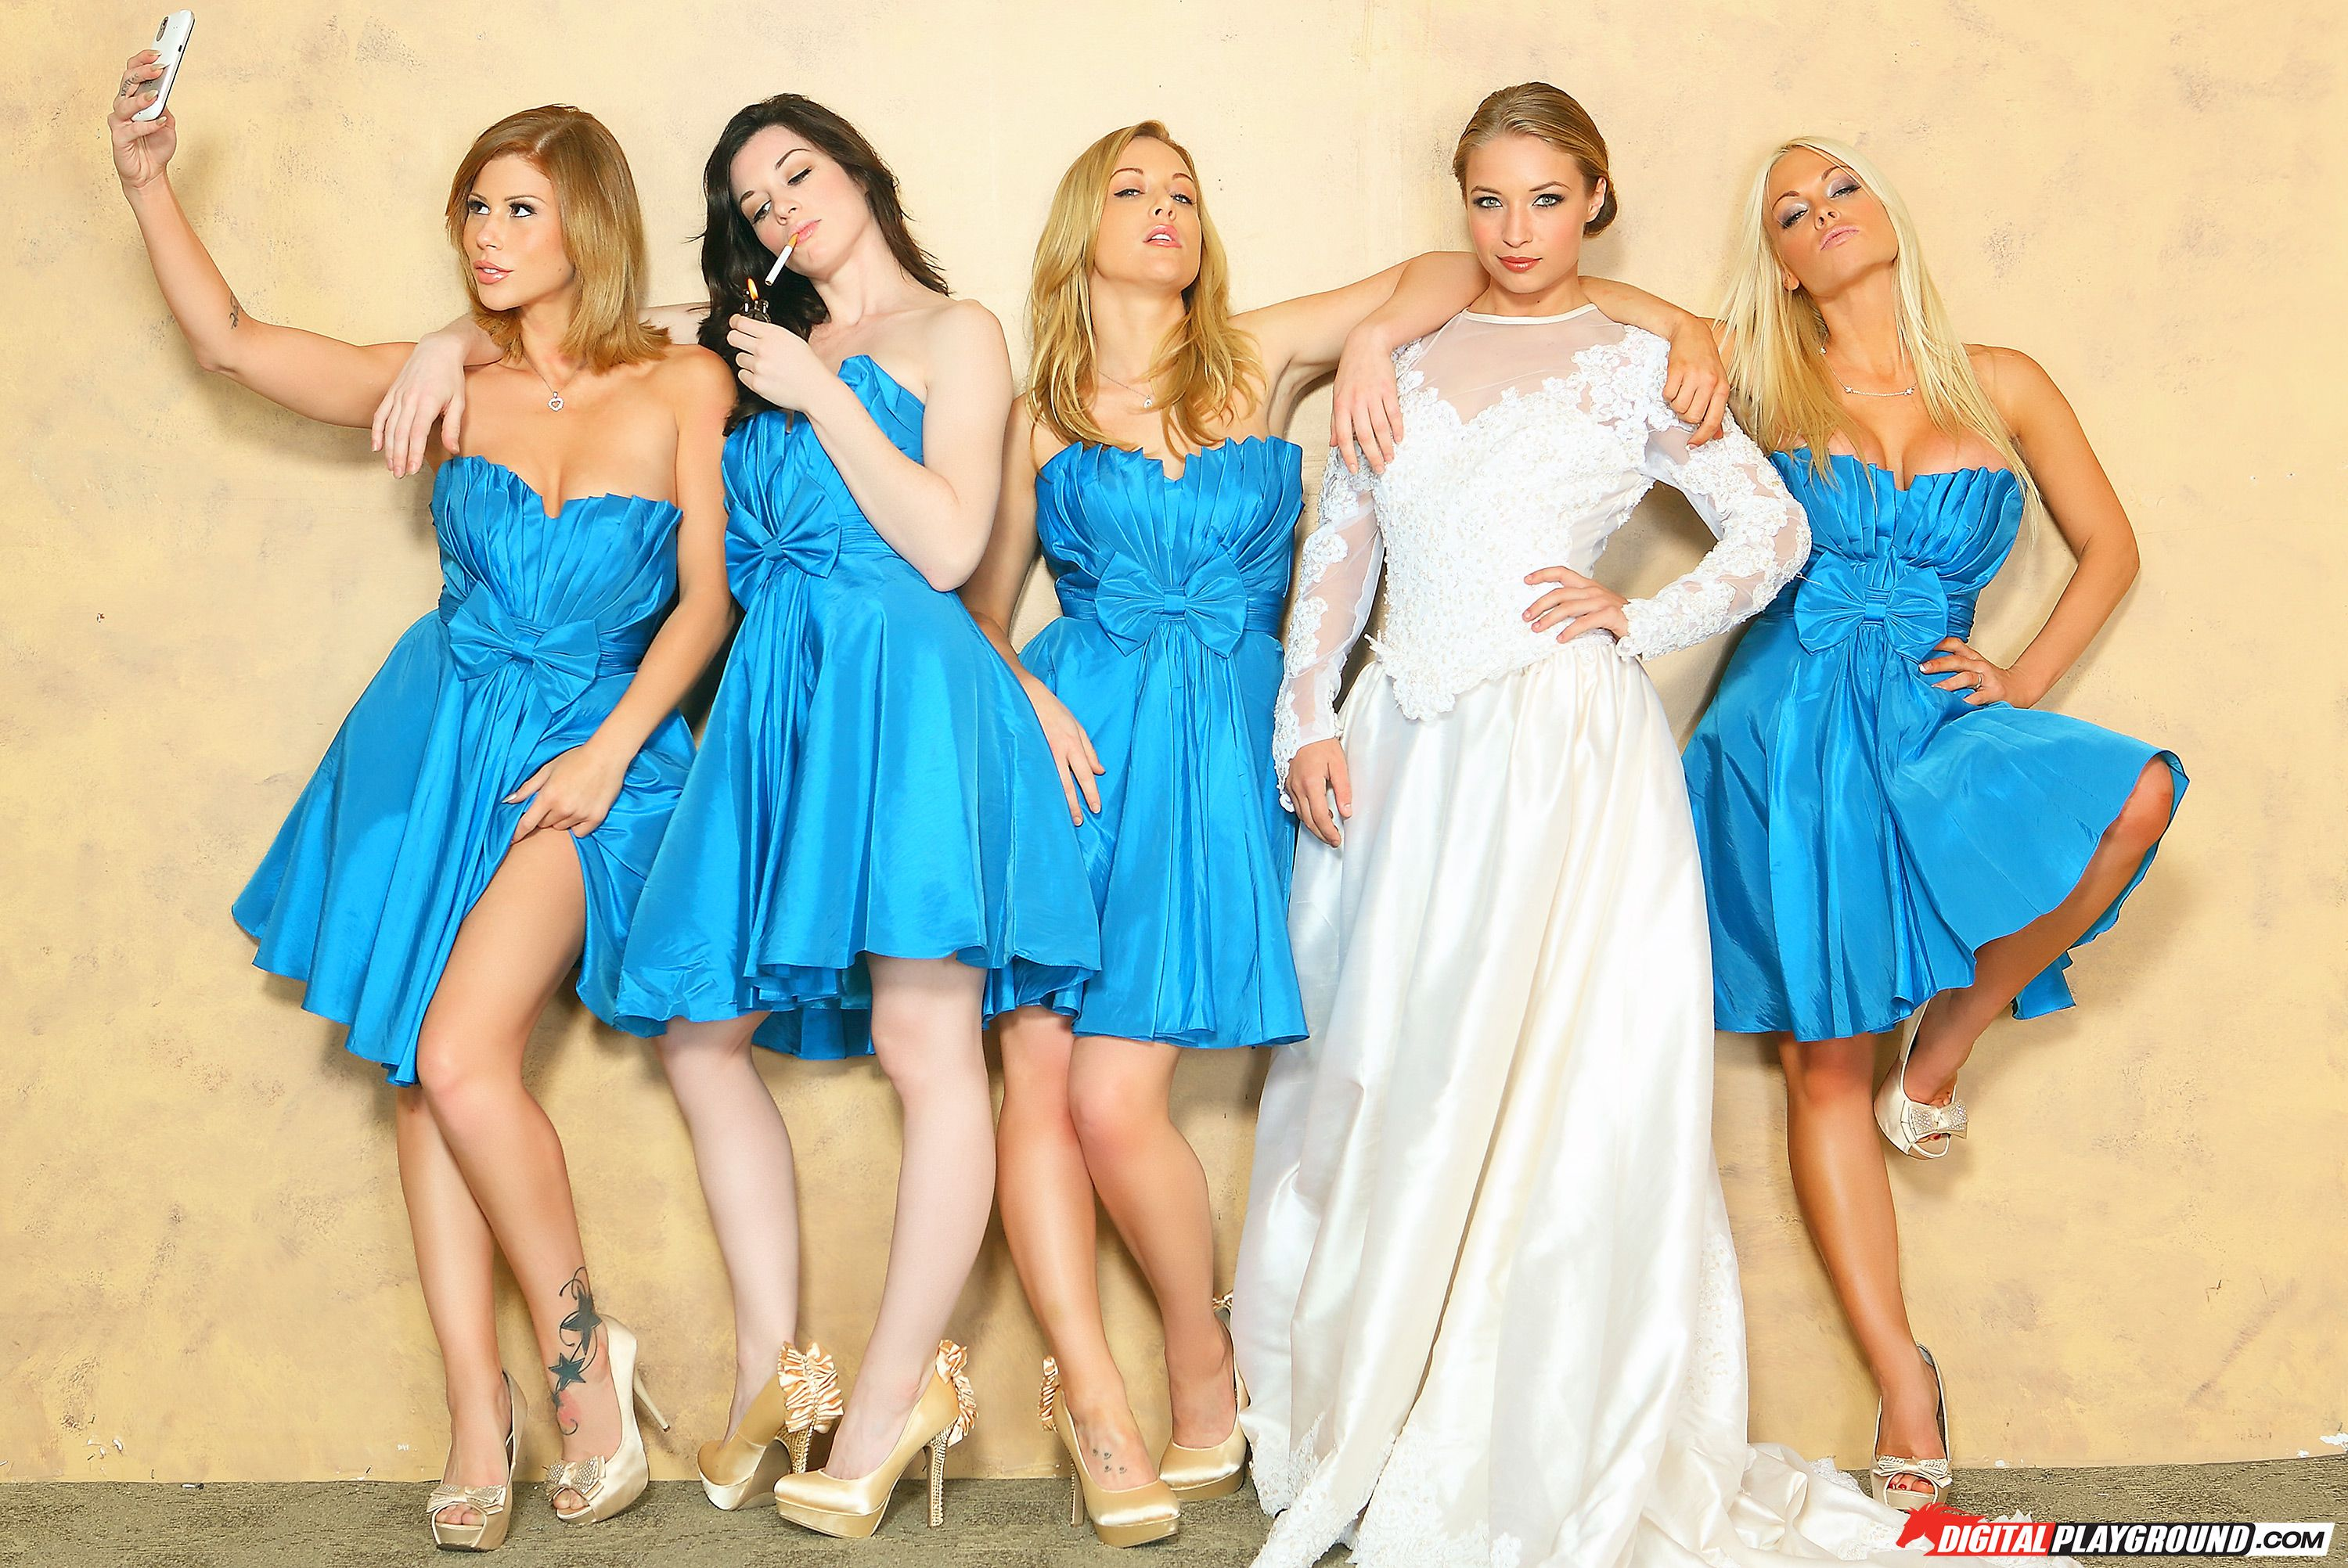 Cheap Wedding Dresses Brooklyn Ny: Alyssa Branch, Brooklyn Lee, Jesse Jane®, Kayden Kross